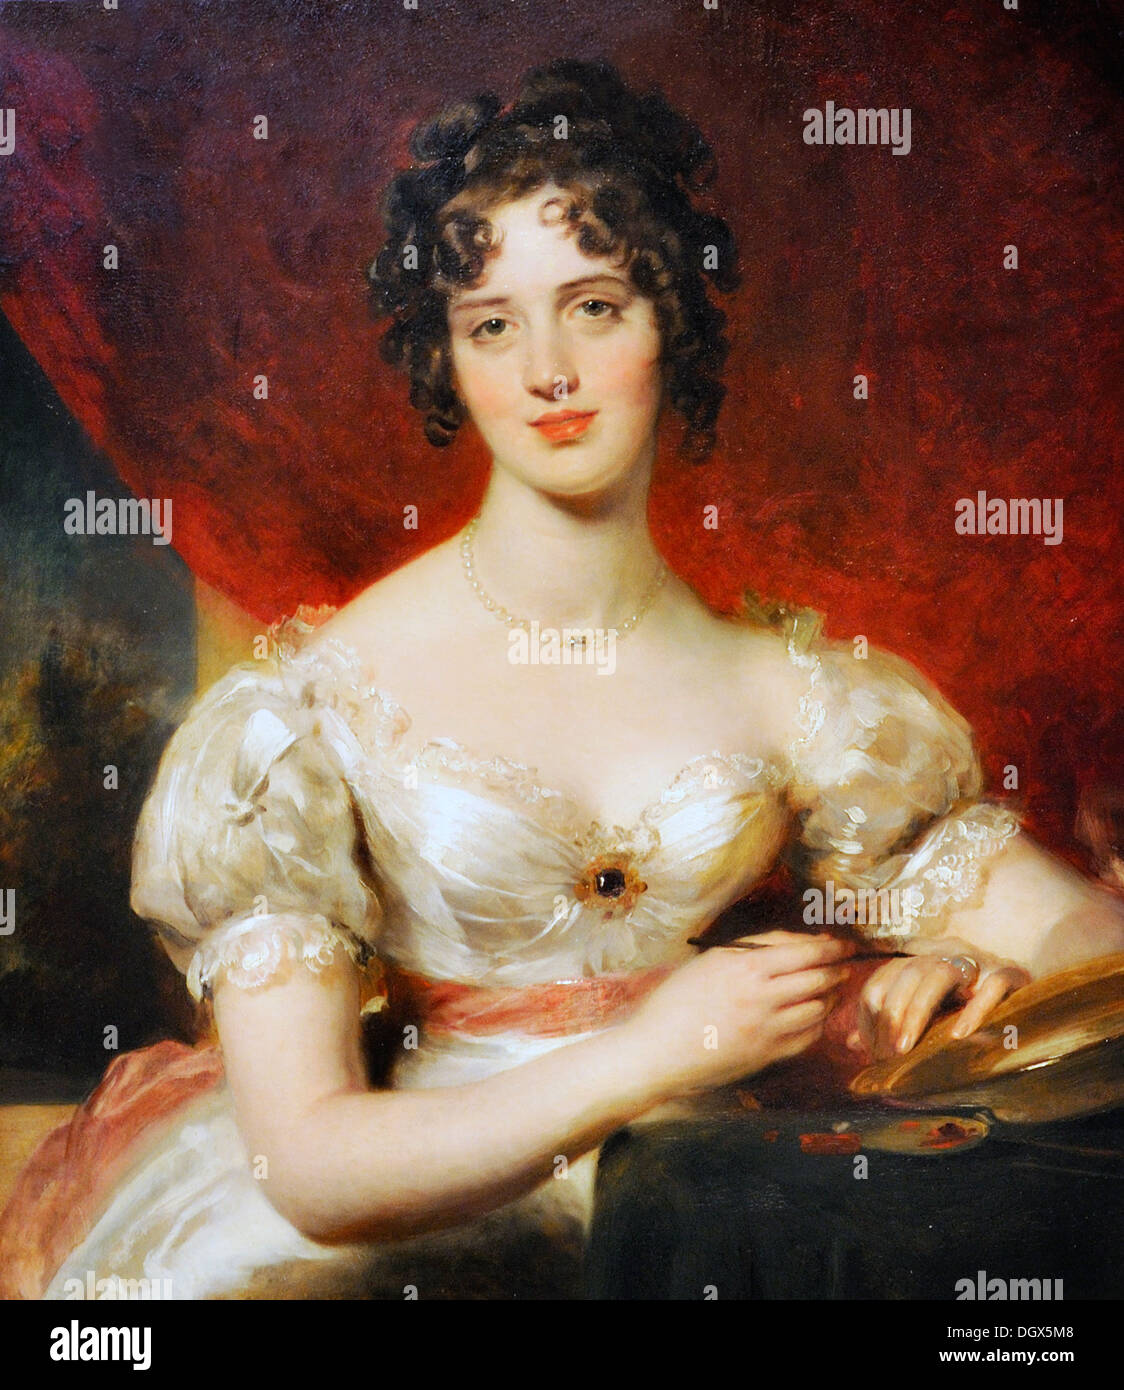 Portrait Of Mary Anne Bloxam (later Mrs. Frederick H. Hemming) - by Thomas Lawrence, 1825 - Stock Image